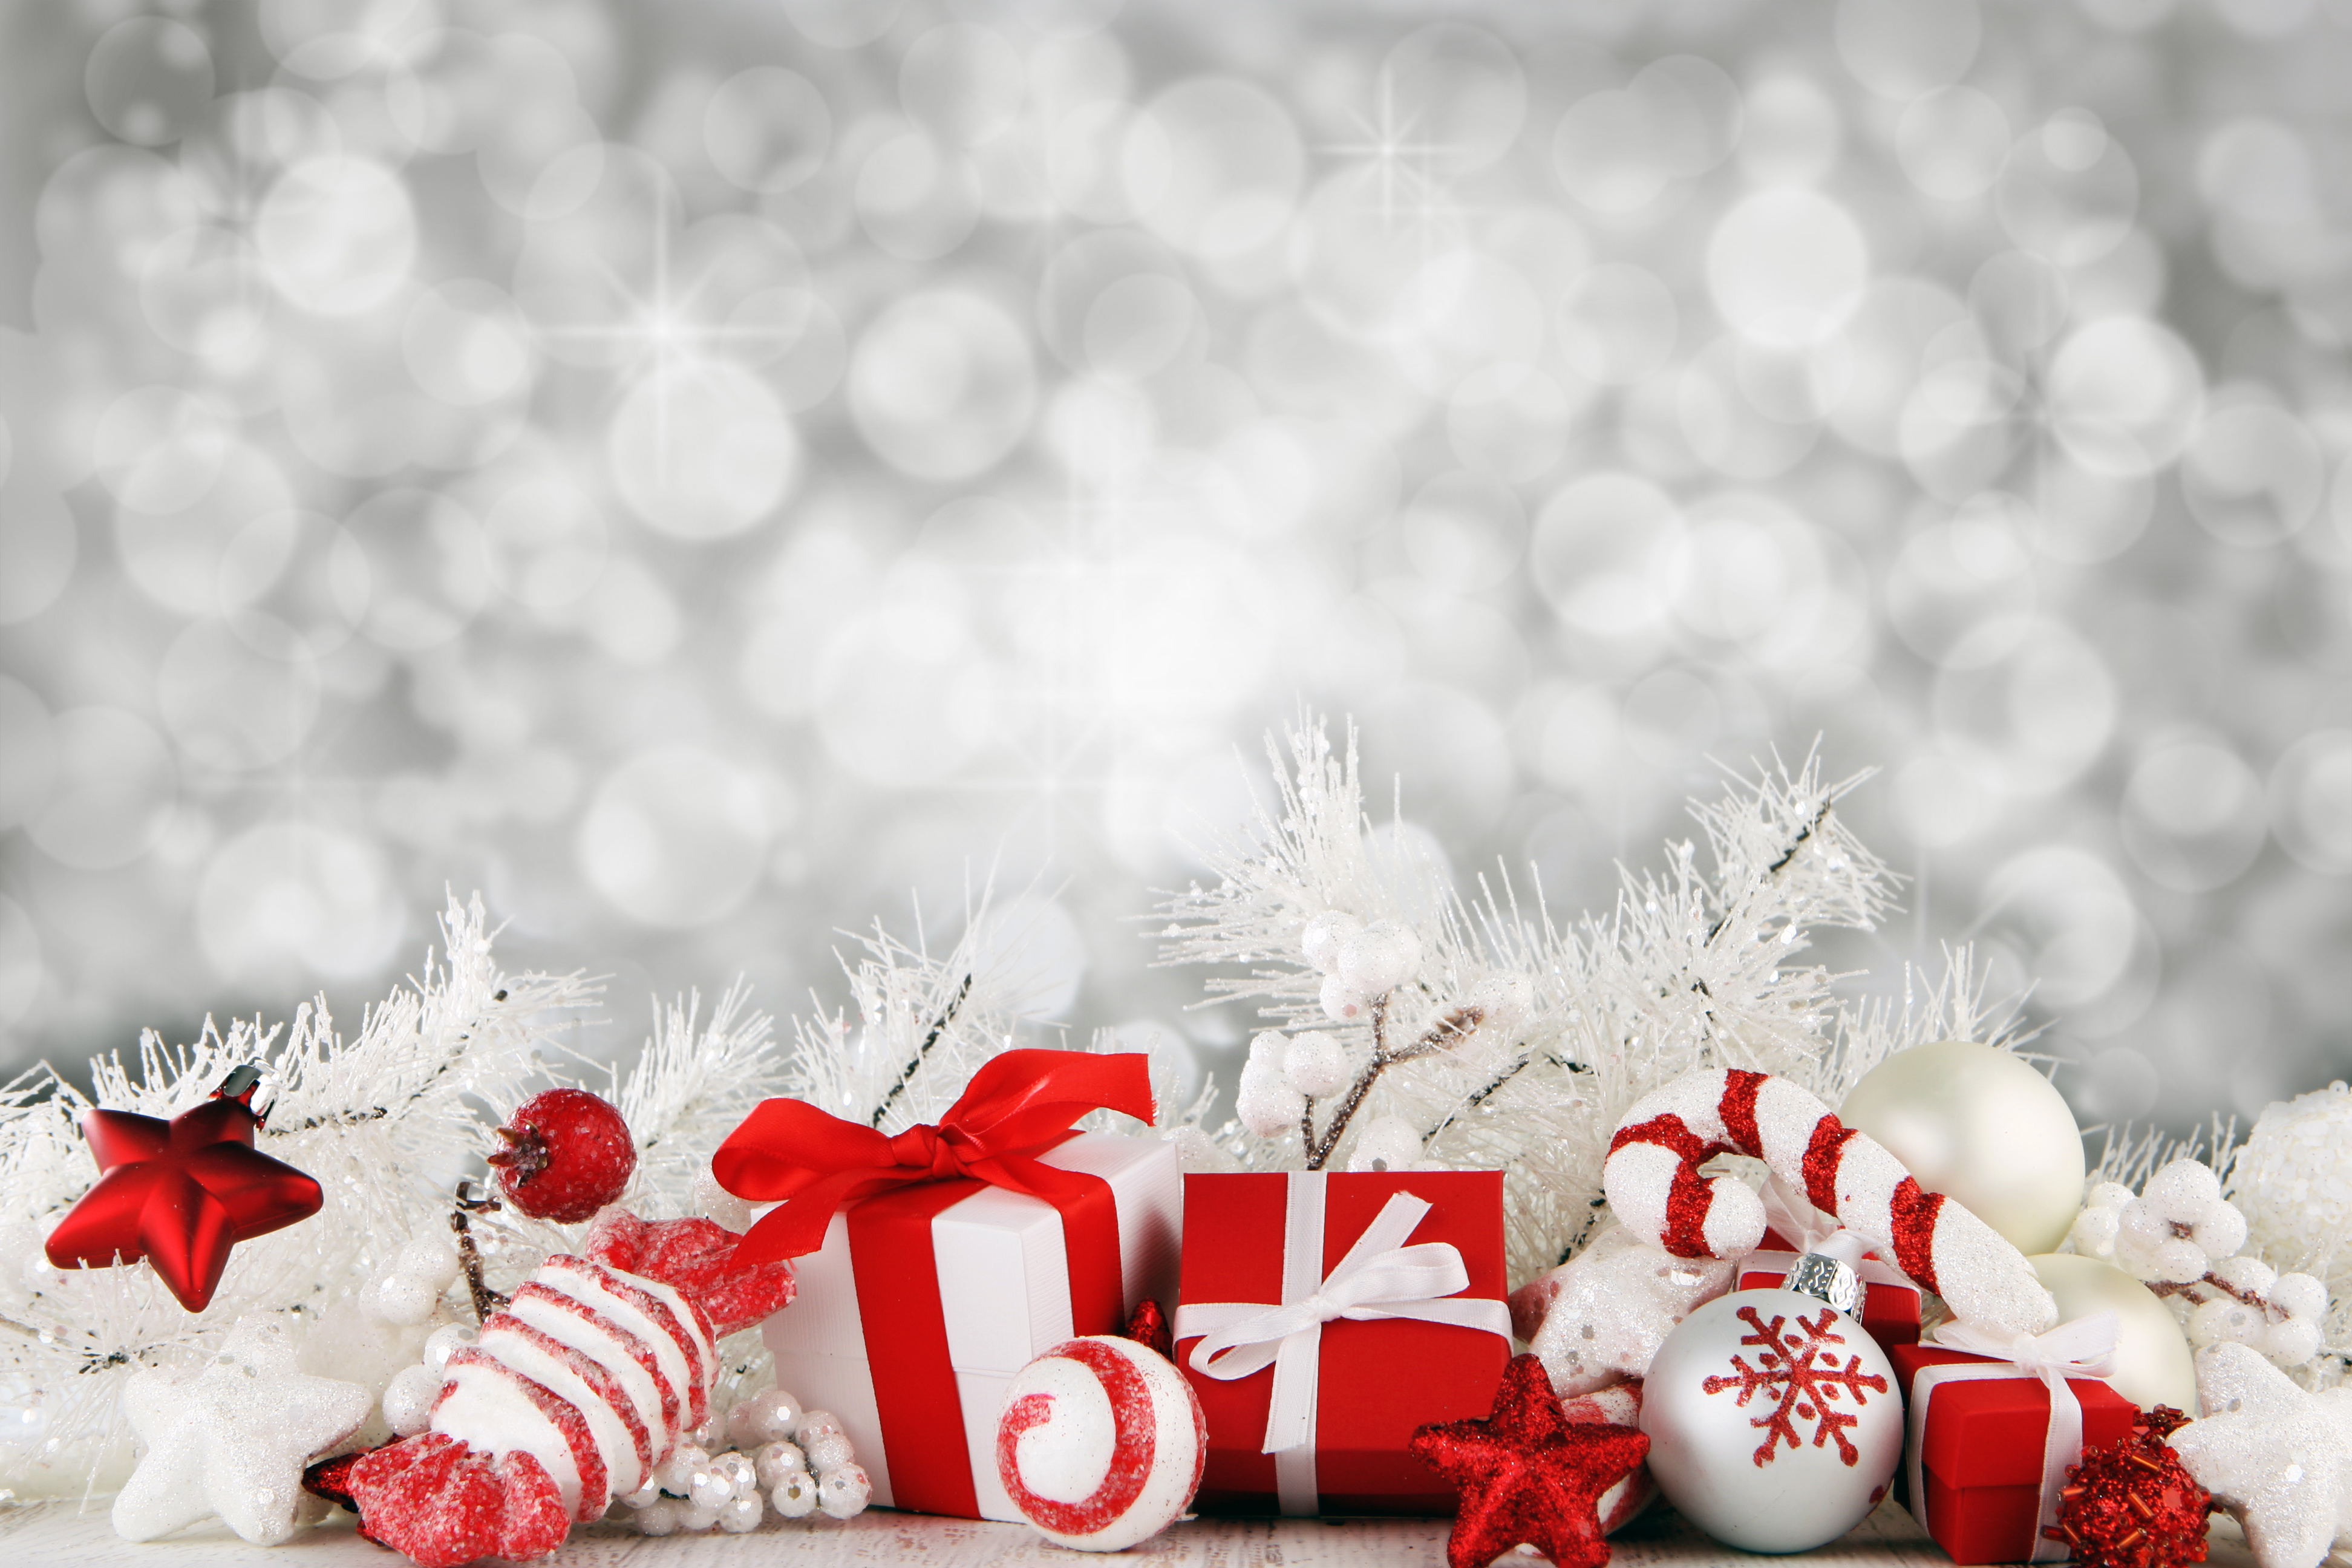 2015 Christmas Backgrounds   Wallpapers Pics Pictures 3888x2592